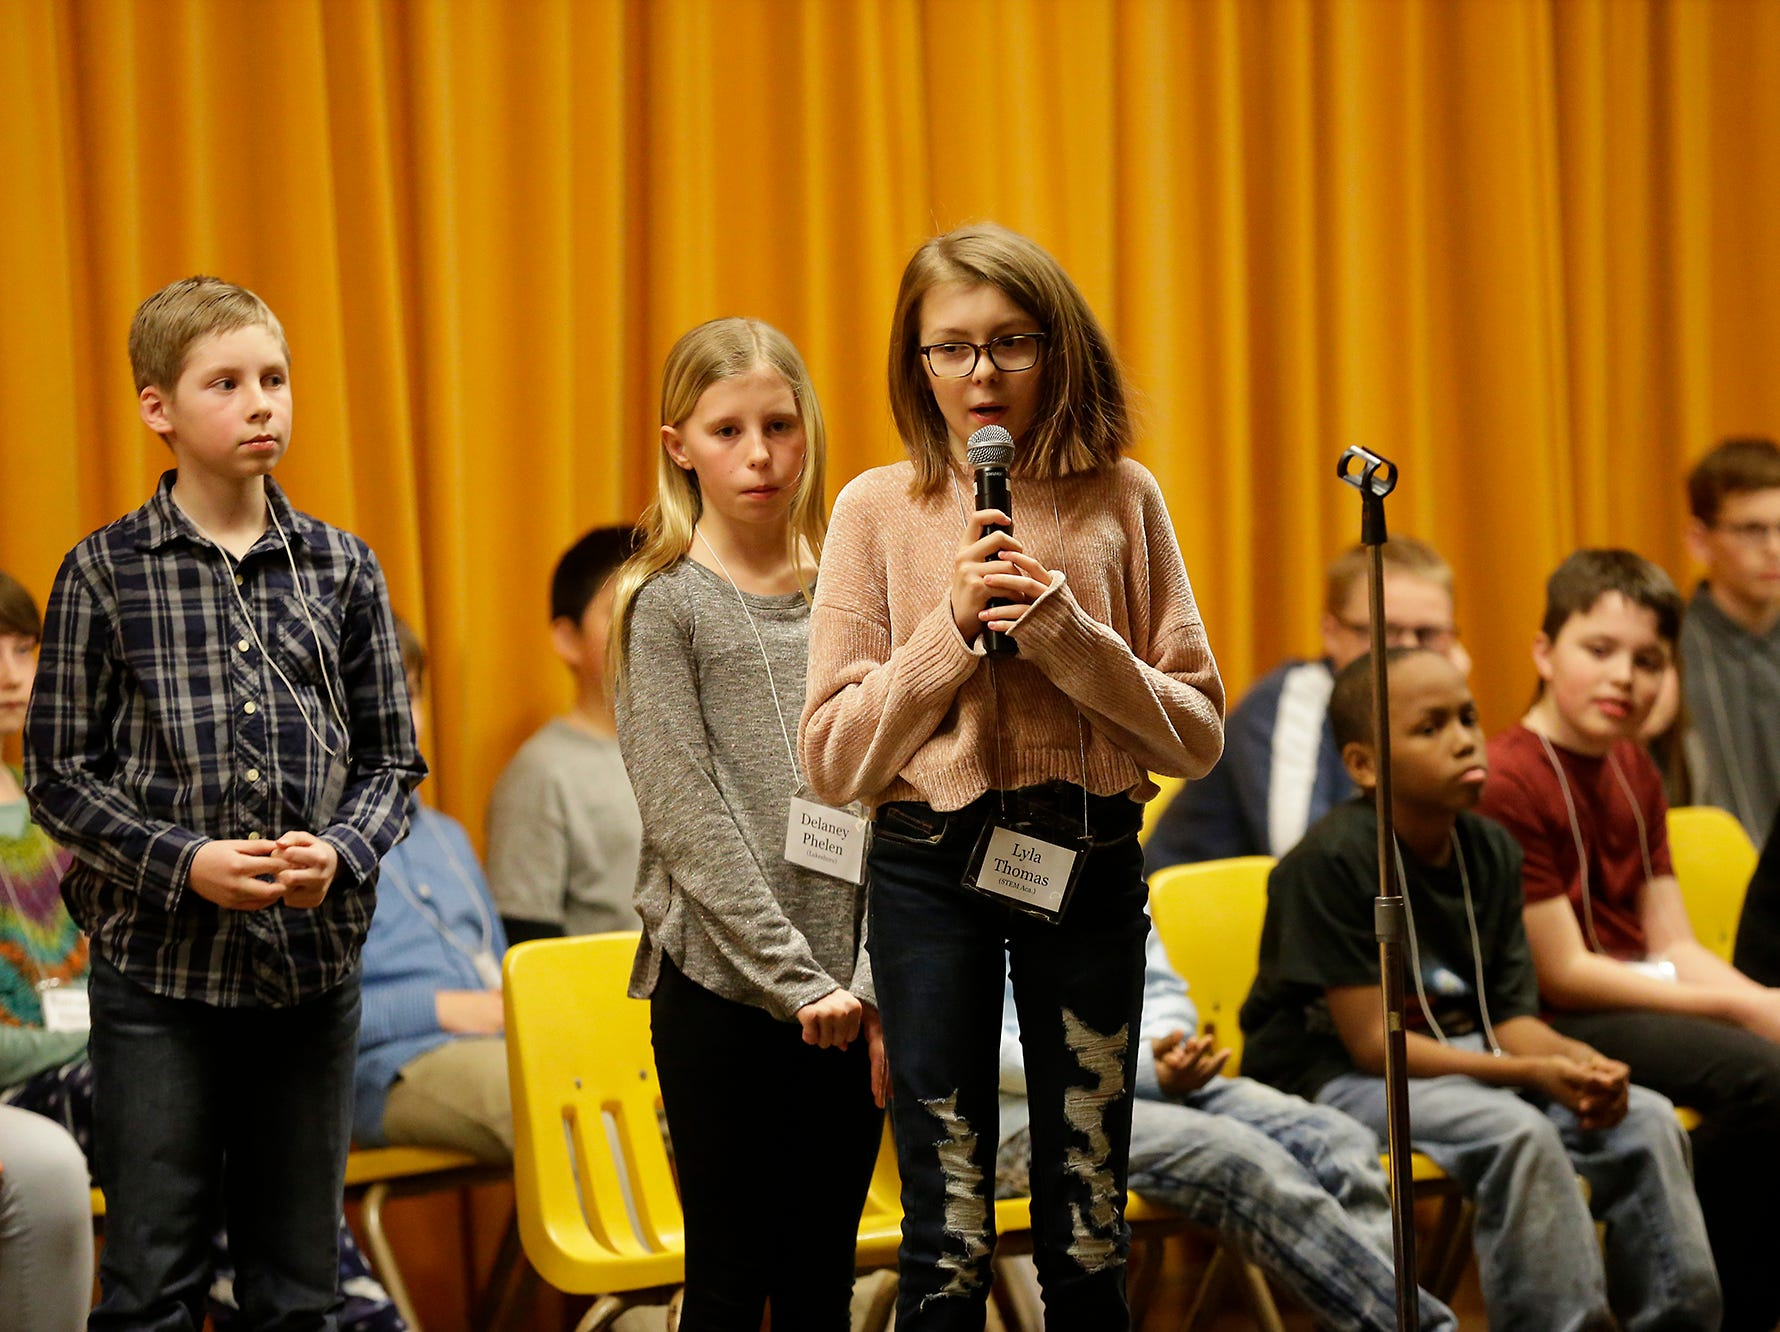 Lyla Thomas of STEM Academy competes in the Fond du Lac citywide spelling bee Tuesday, February 26, 2019 at These Middle School in Fond du Lac, Wis. Doug Raflik/USA TODAY NETWORK-Wisconsin